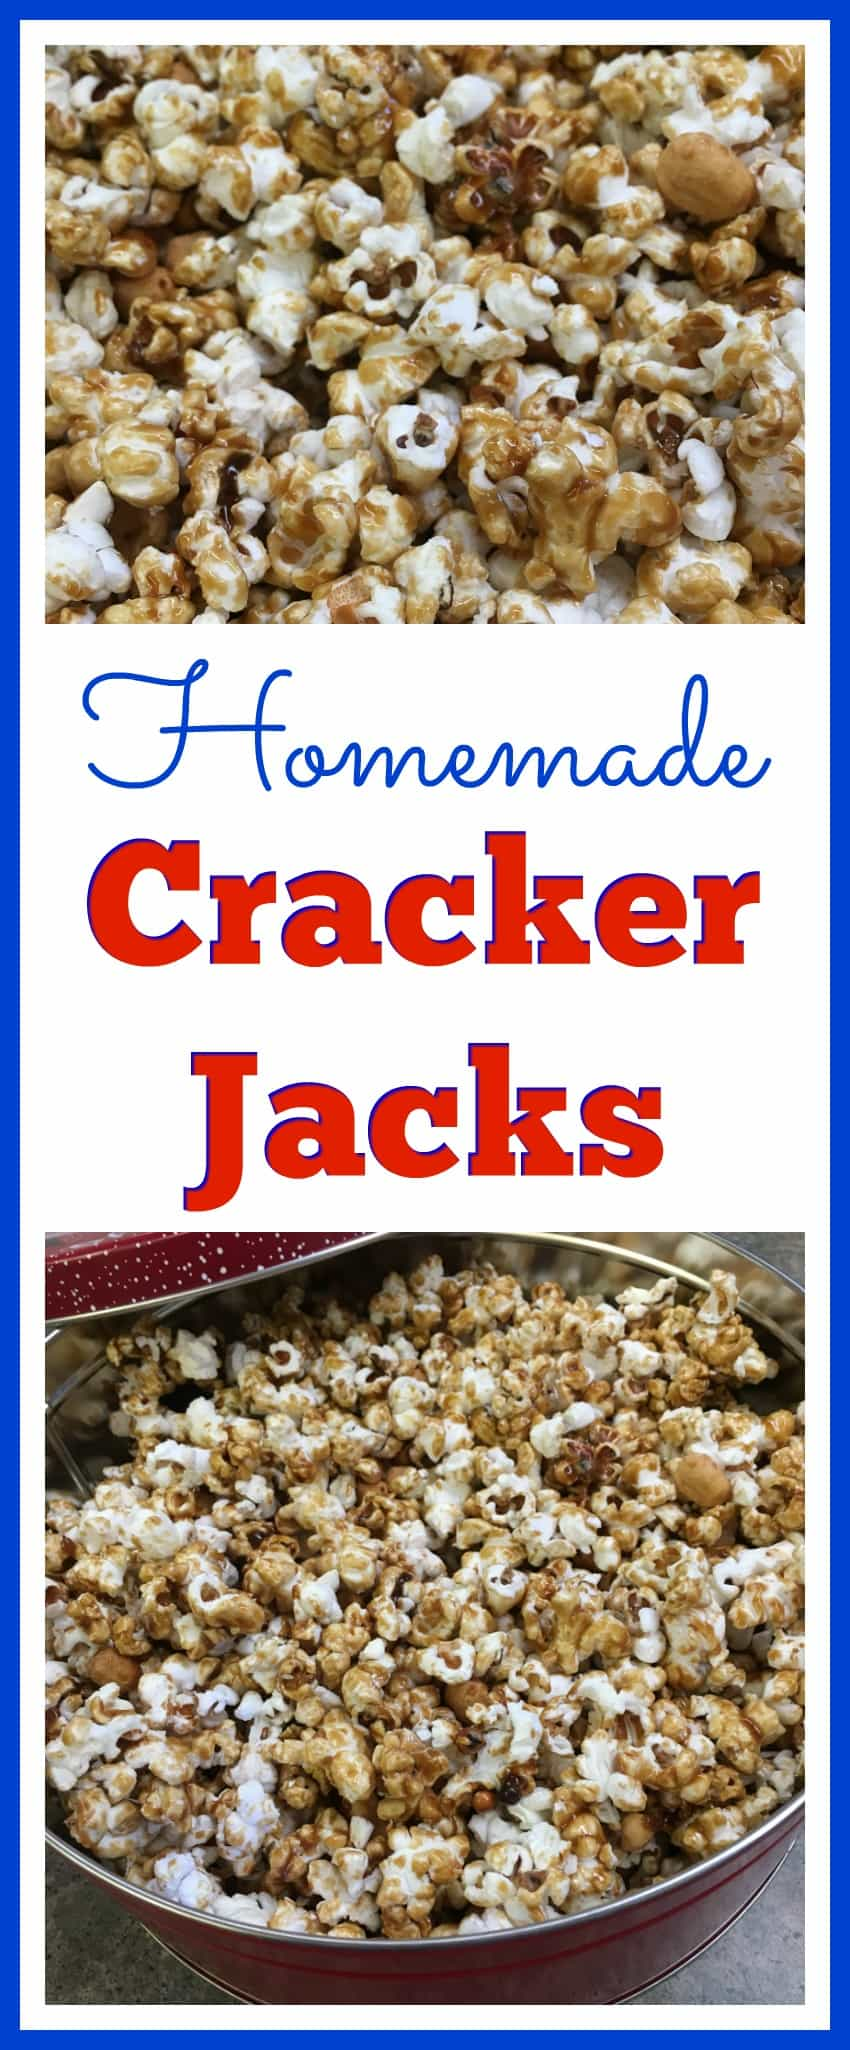 Homemade Cracker Jacks for the Entire Family - Back To My ...